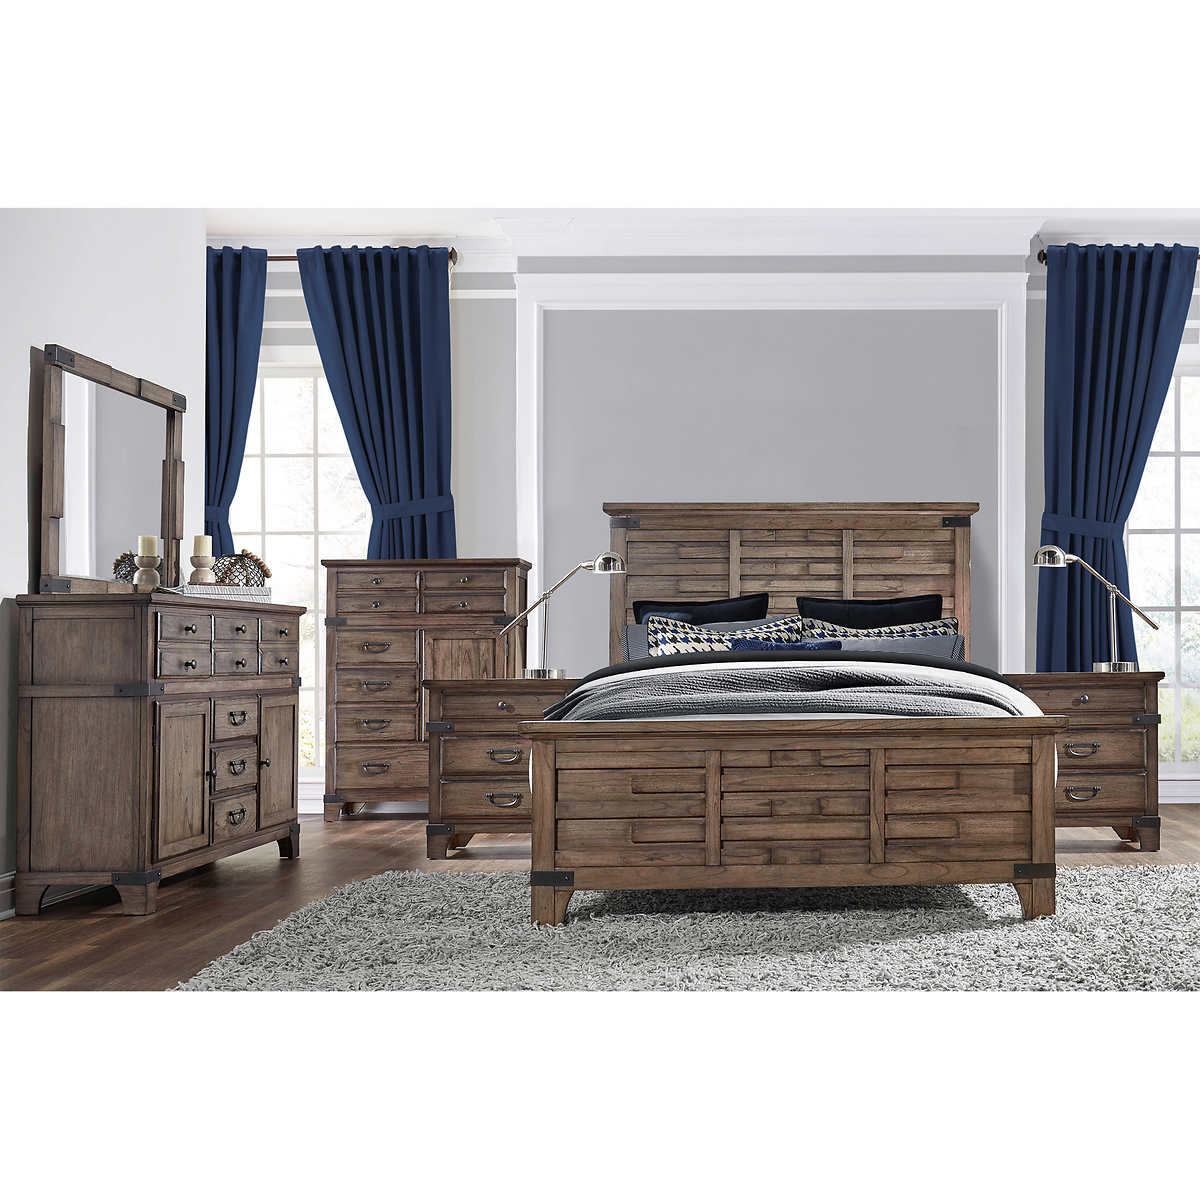 Evelyn 6piece Cal King Bedroom Set